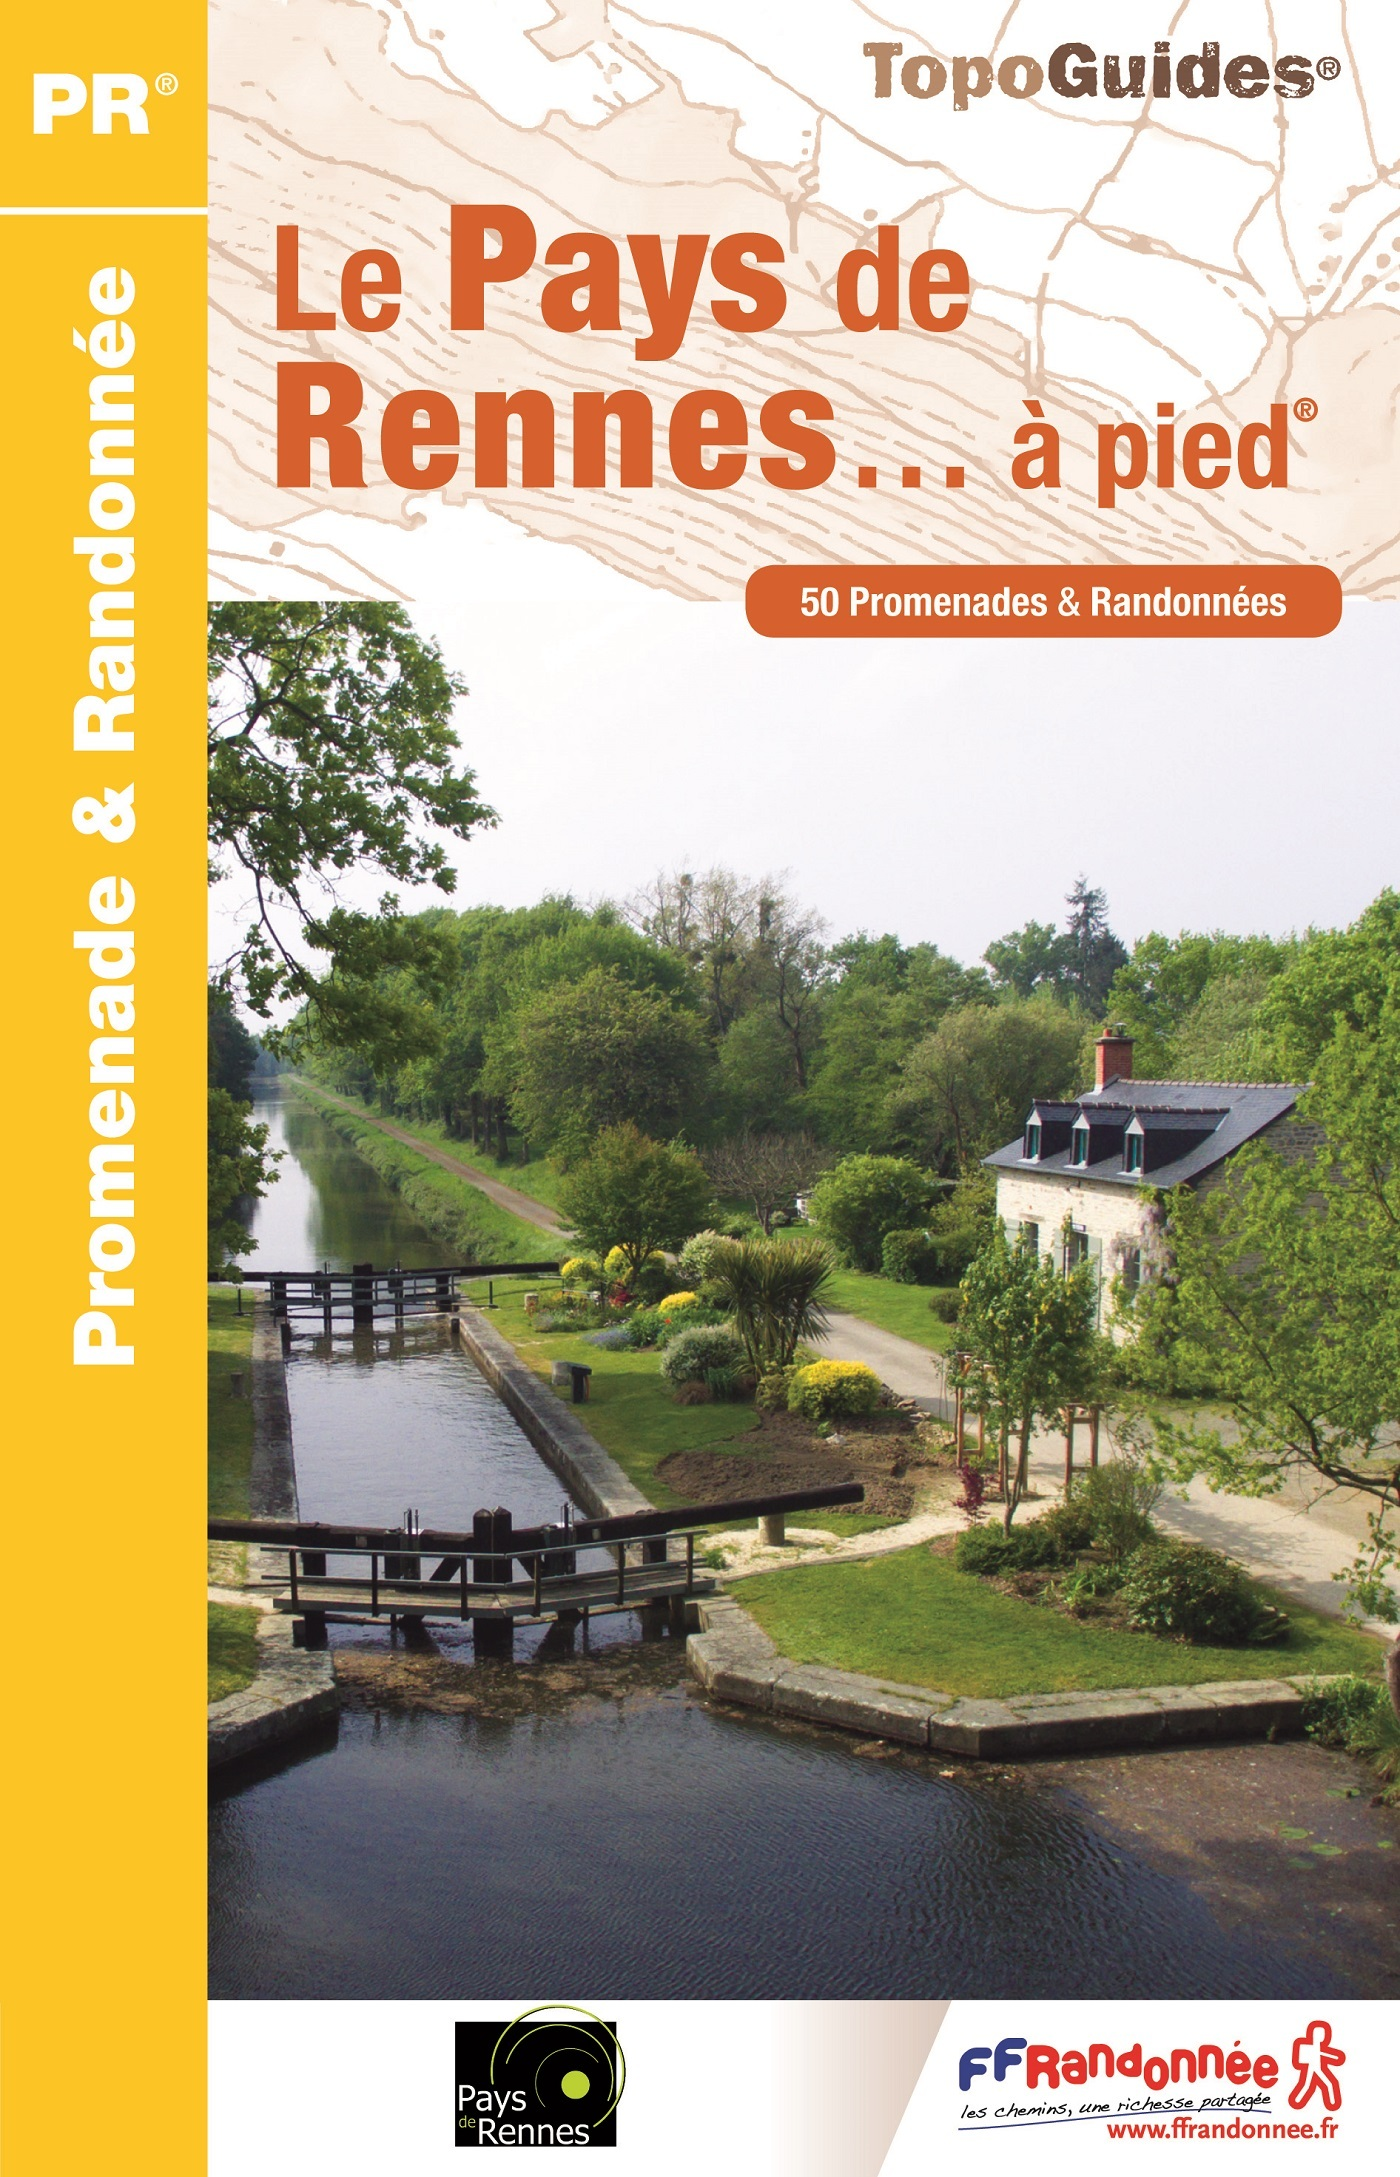 PAYS RENNES A PIED NED 2017 - 35 - PR - P352